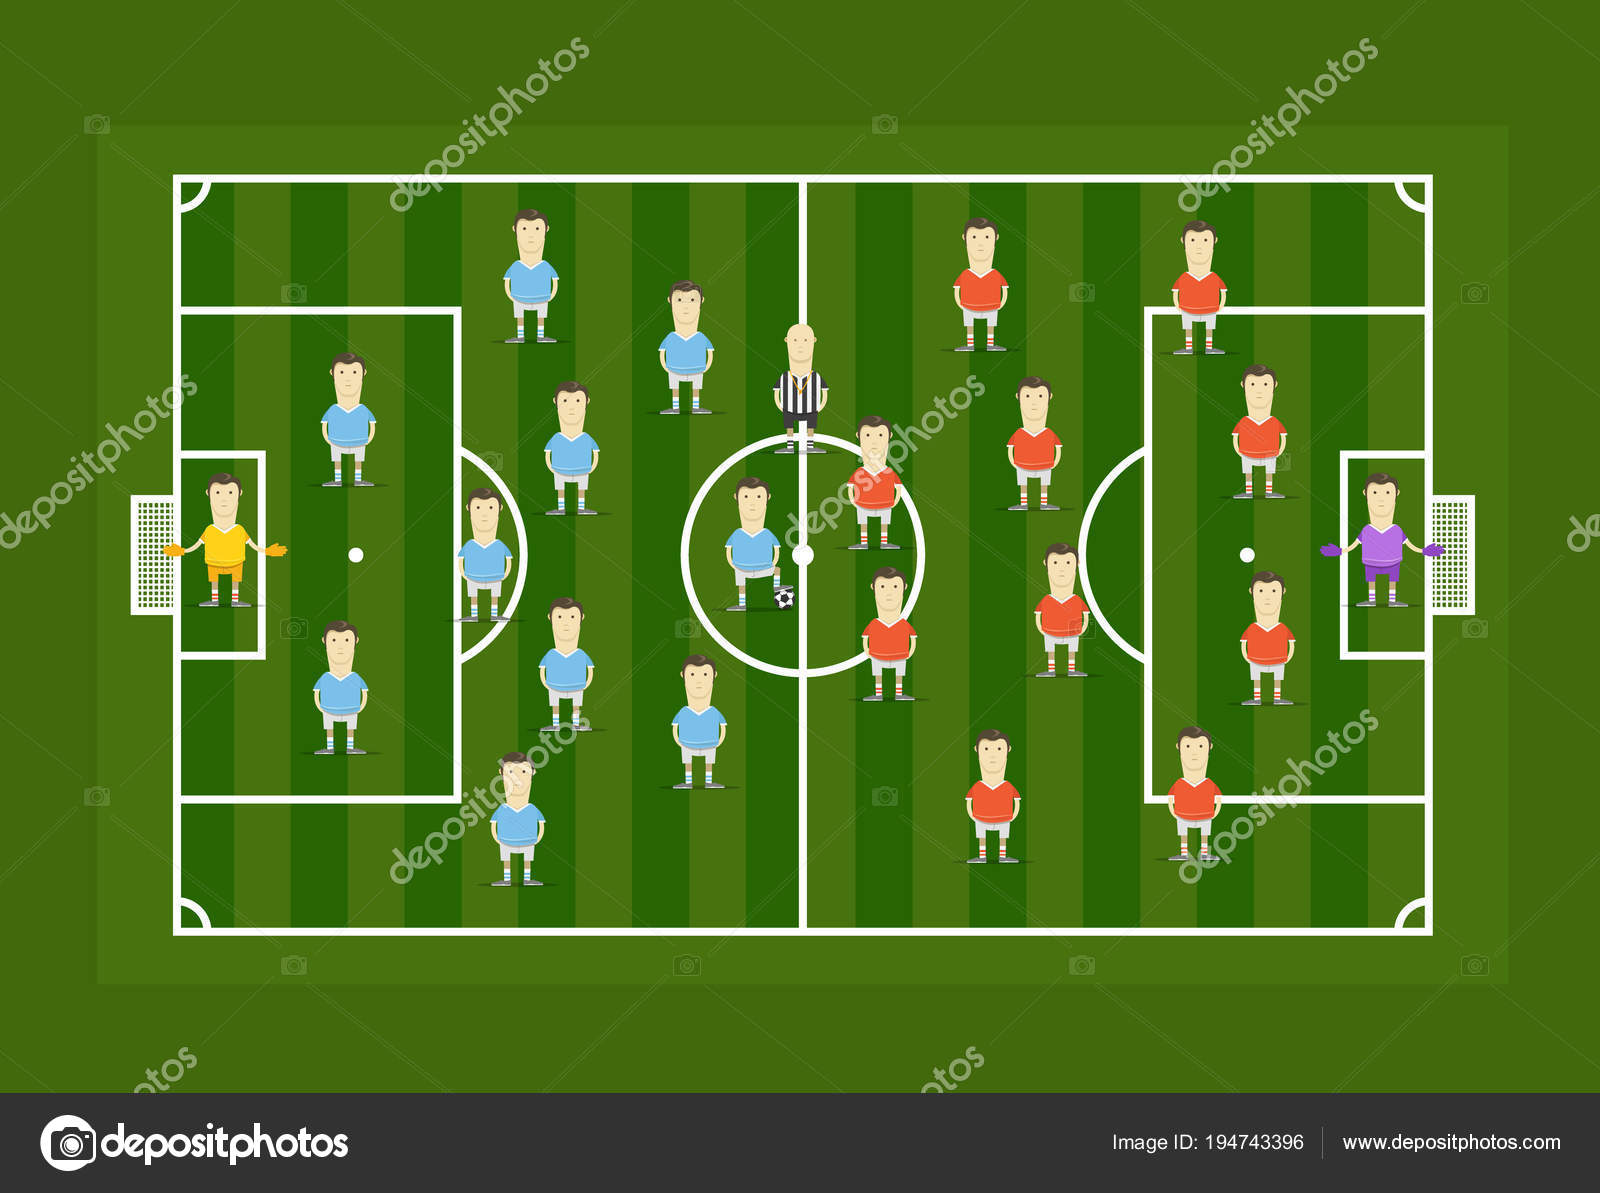 Green Football Field With Football Players Infographic Template